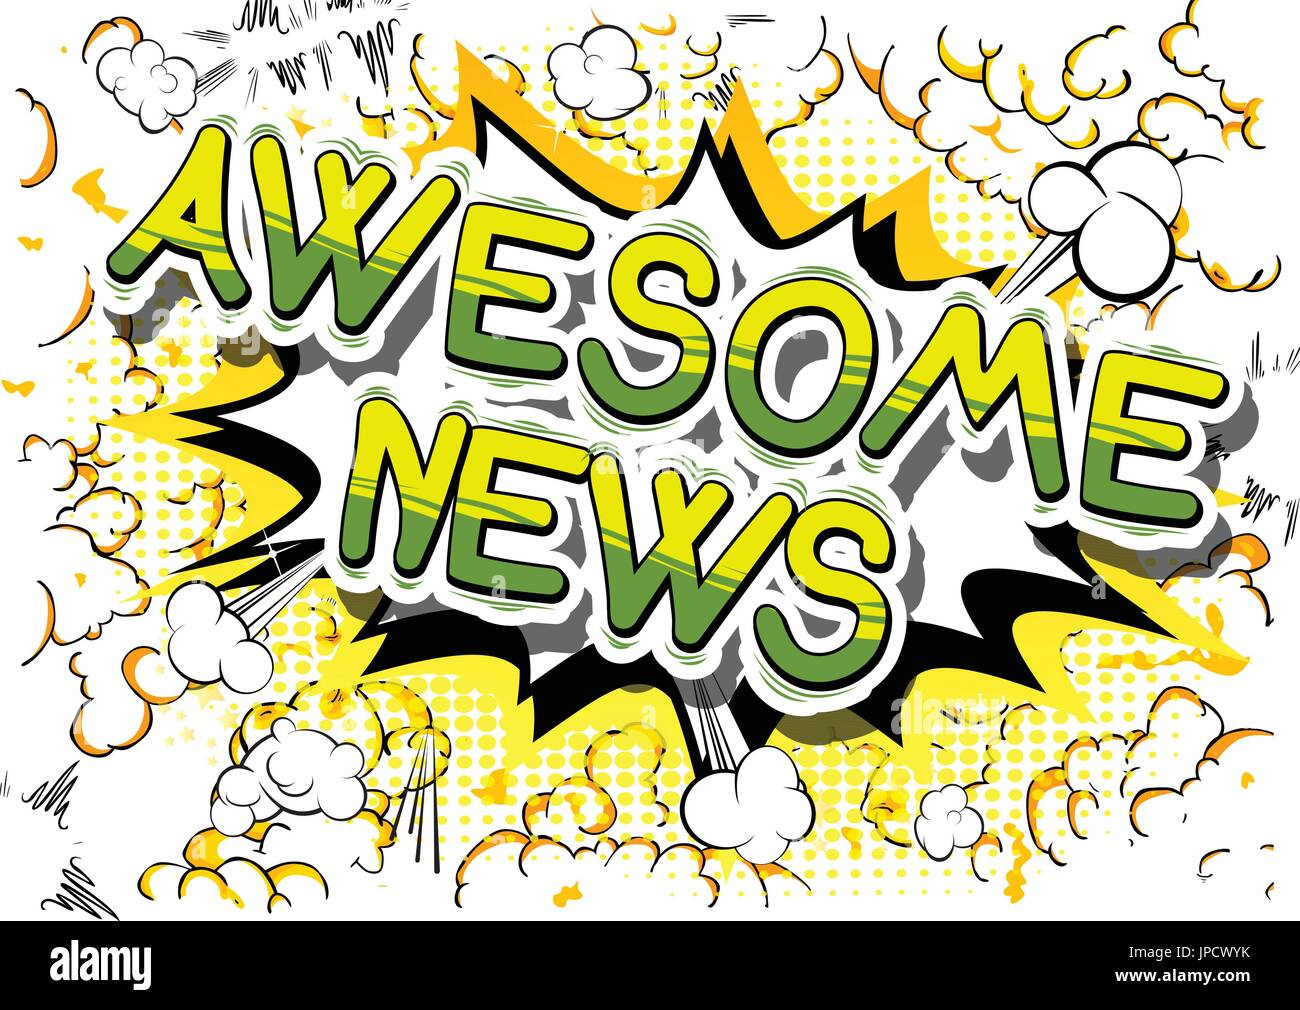 Awesome news pictures